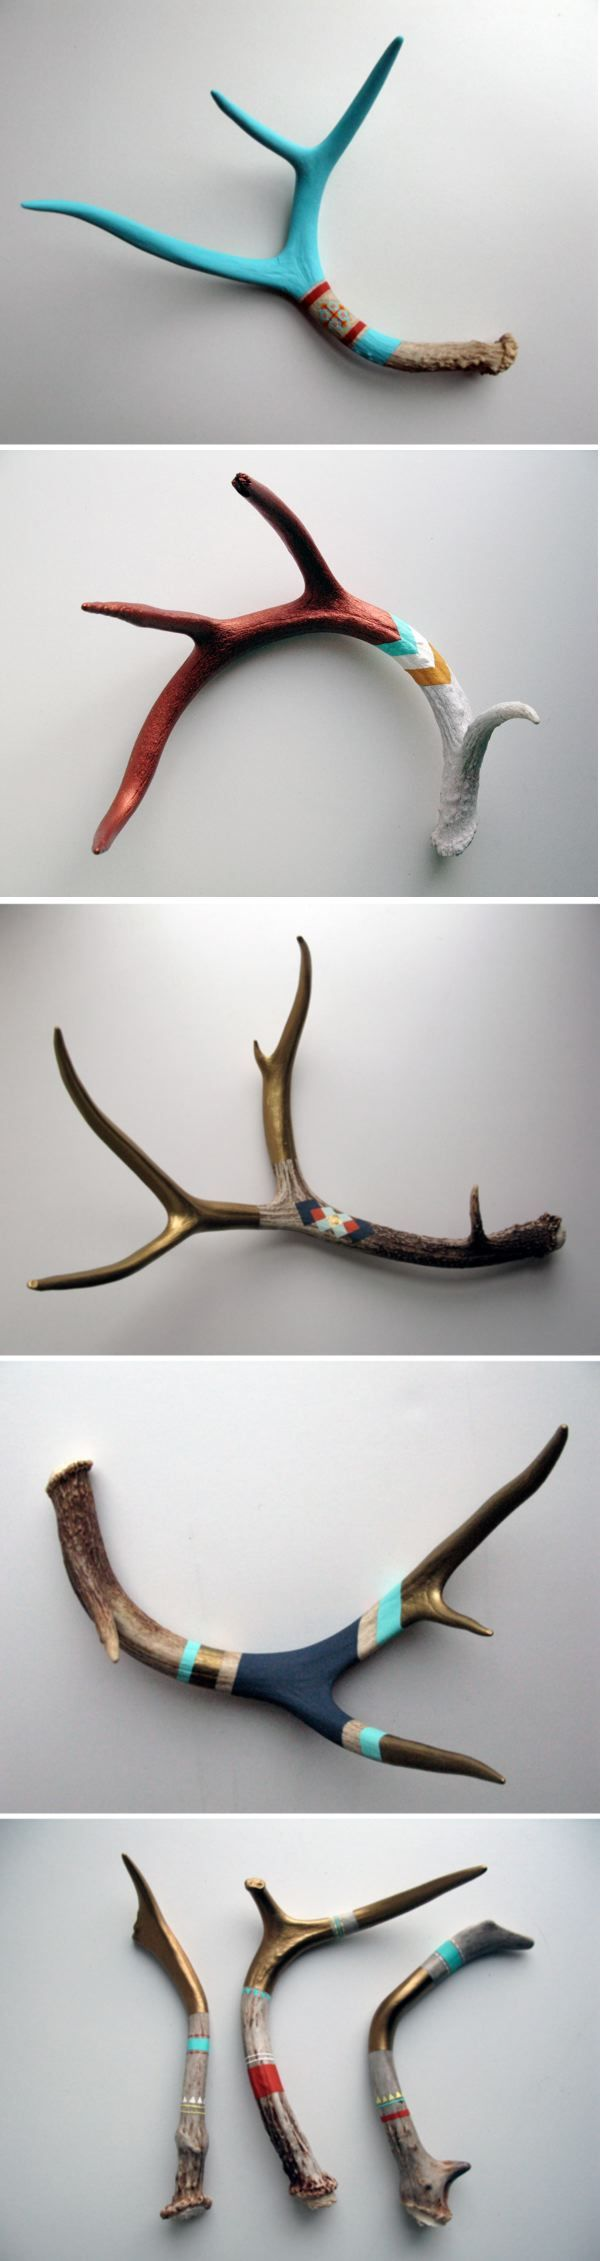 Antlers have been used in interior decoration for a while now and always add interest to a space whether they are being mounted on the wall, being used as a jewellery hook, or sitting prettily under a bell jar.